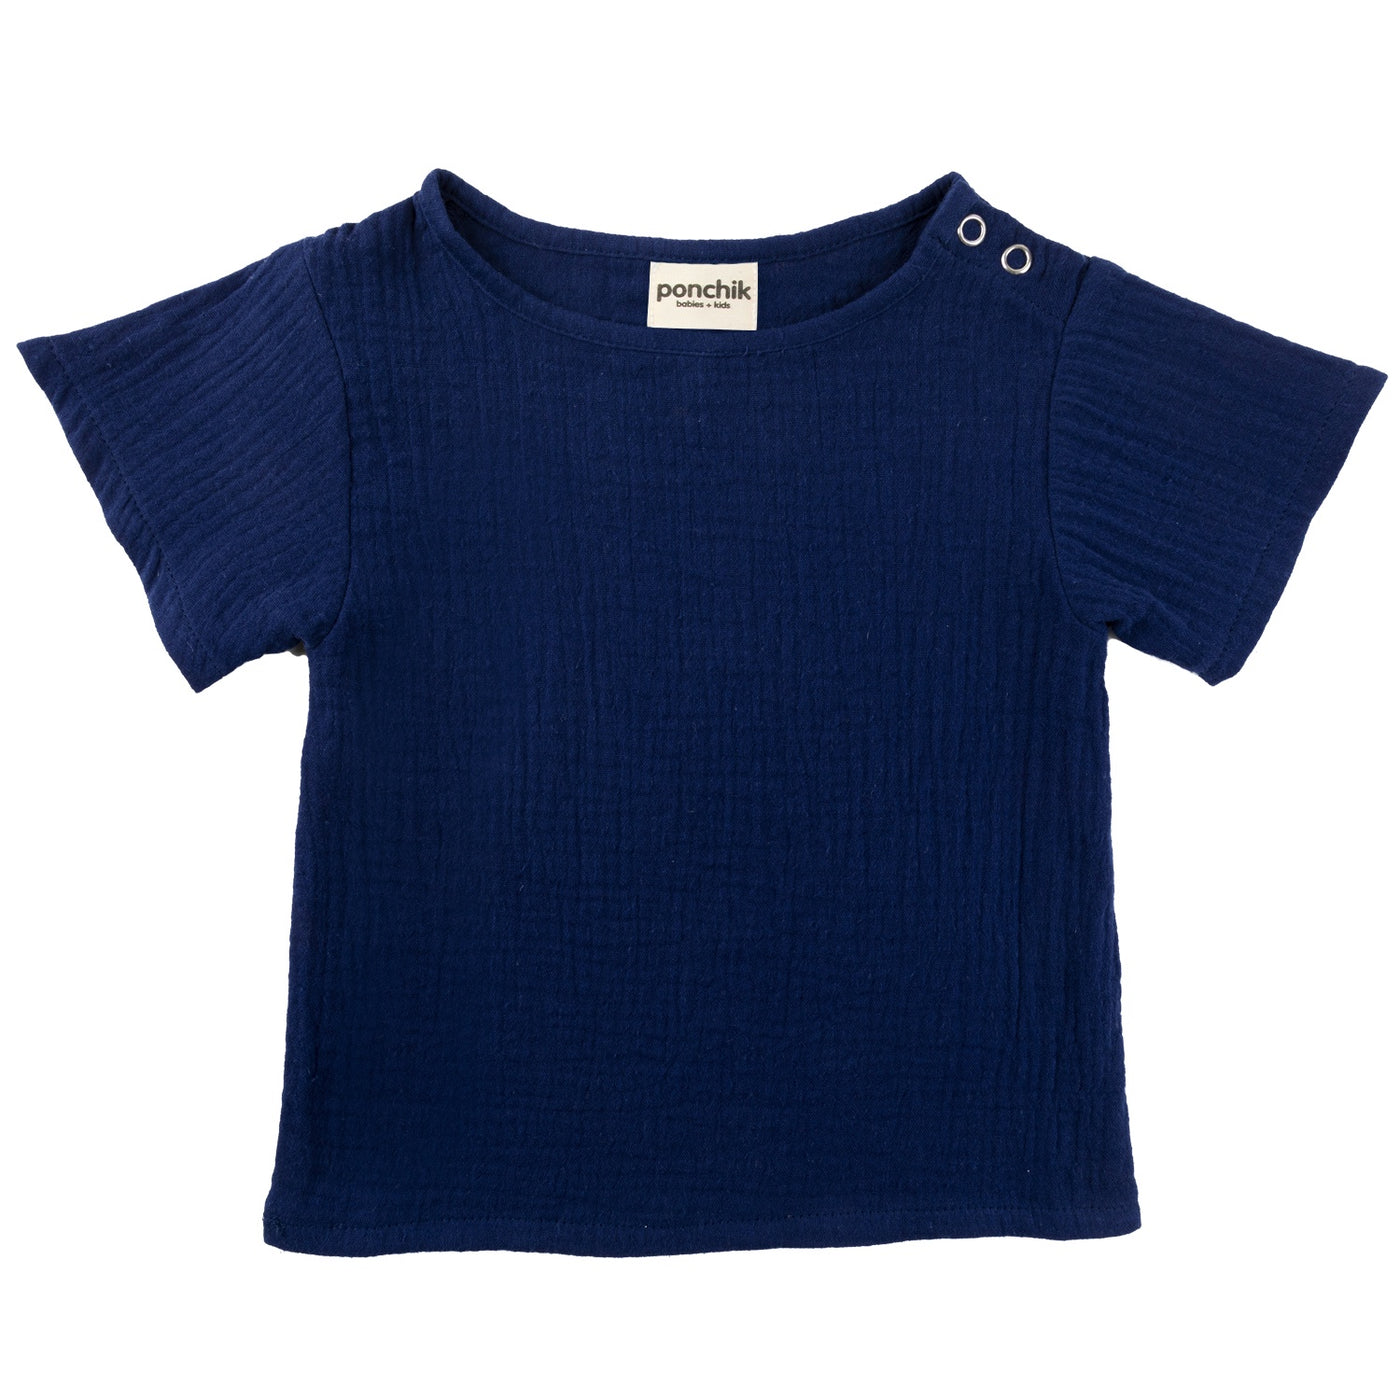 Ponchik cotton t shirt muslin French navy